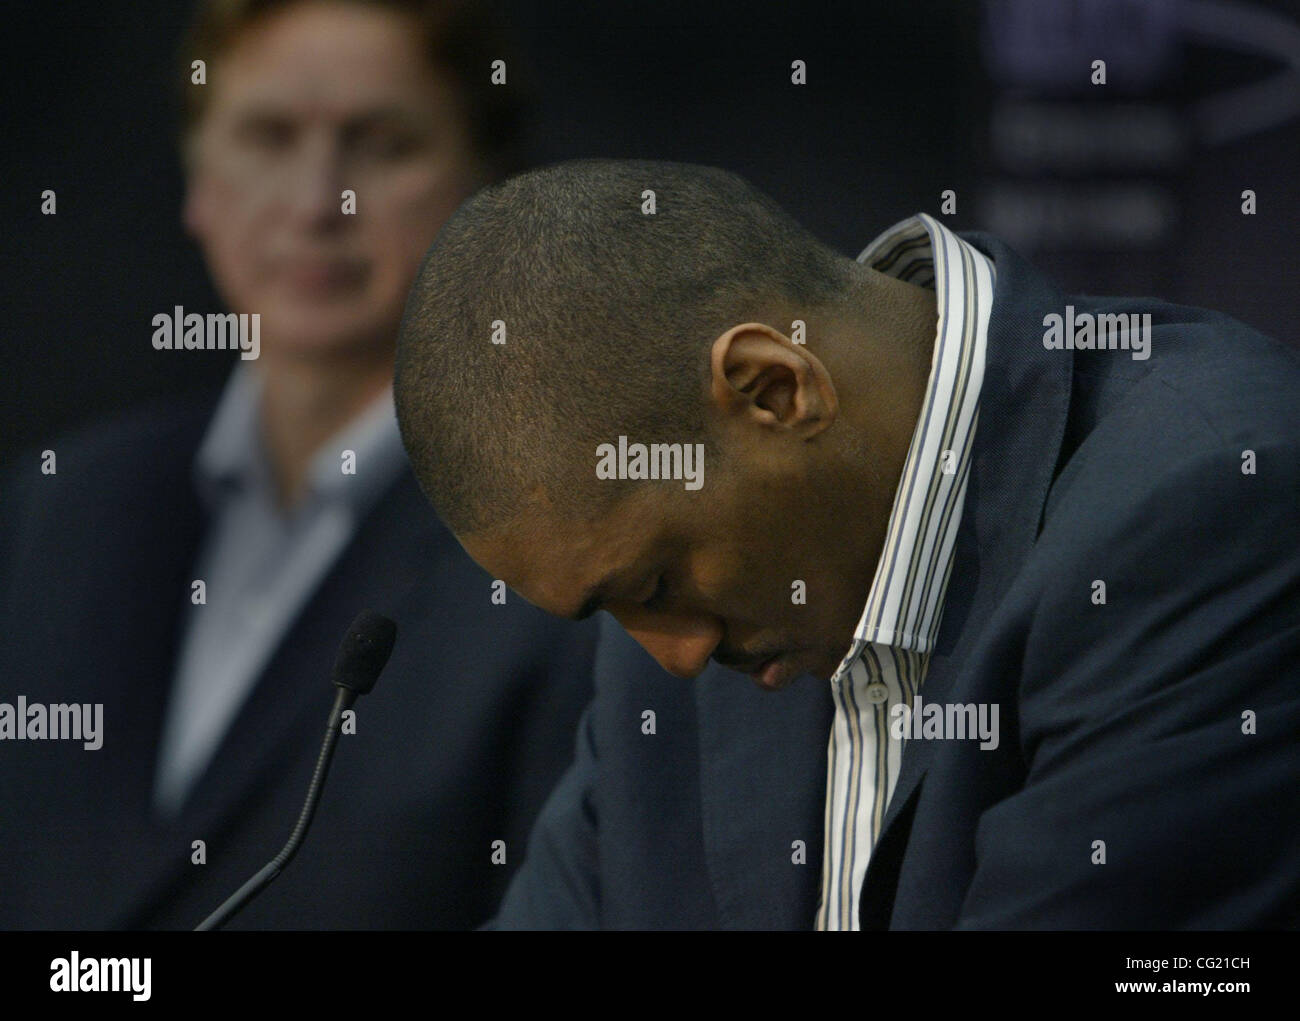 LEDE -- As Kings President Geoff Petrie in the background looks on, Kings player Ron Artest takes a short break - Stock Image